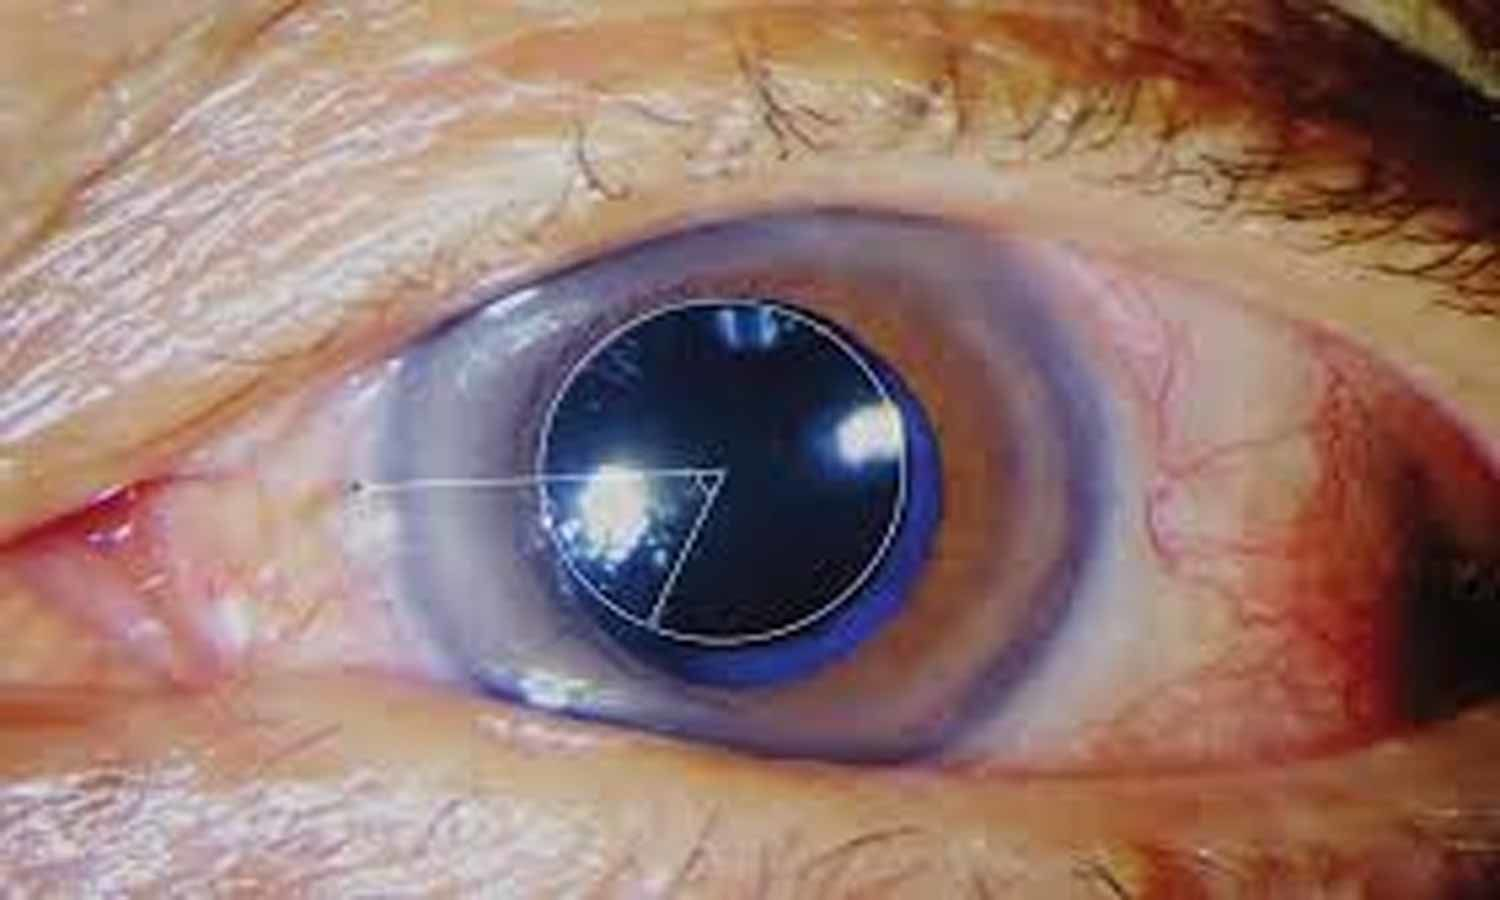 New eye drops may prevent vision loss after retinal vein occlusion